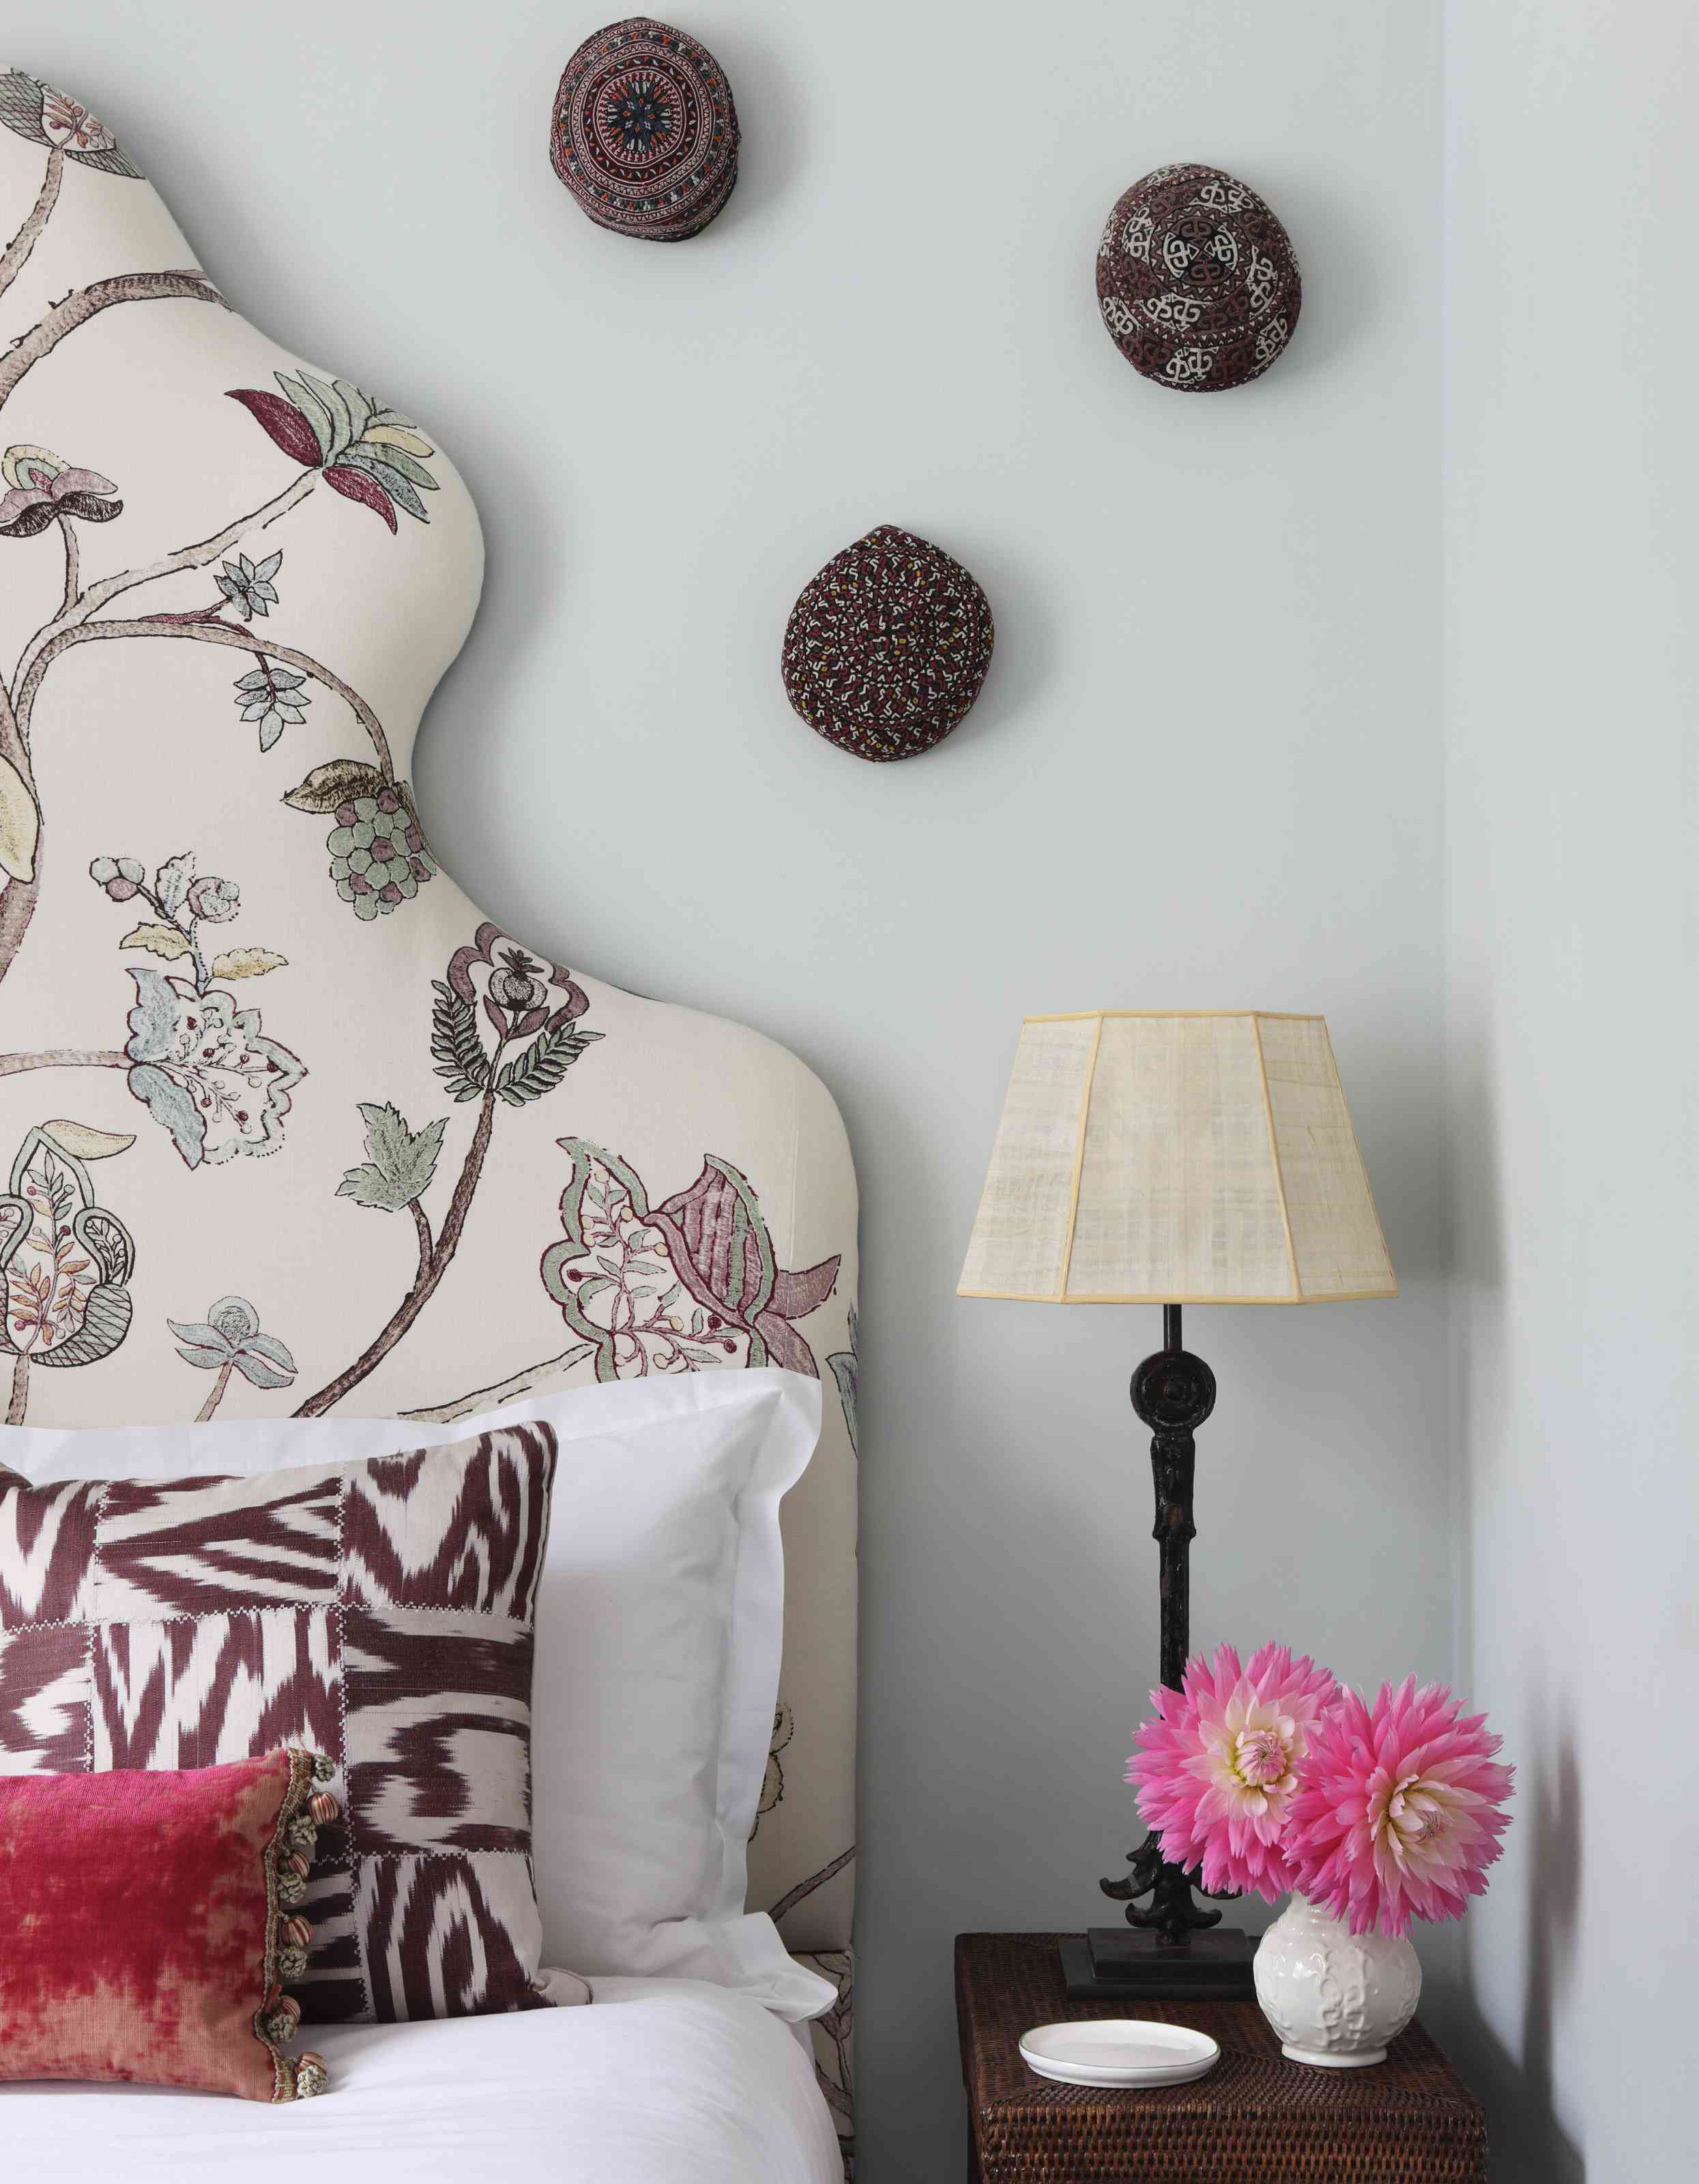 bed with maroon decorative touches